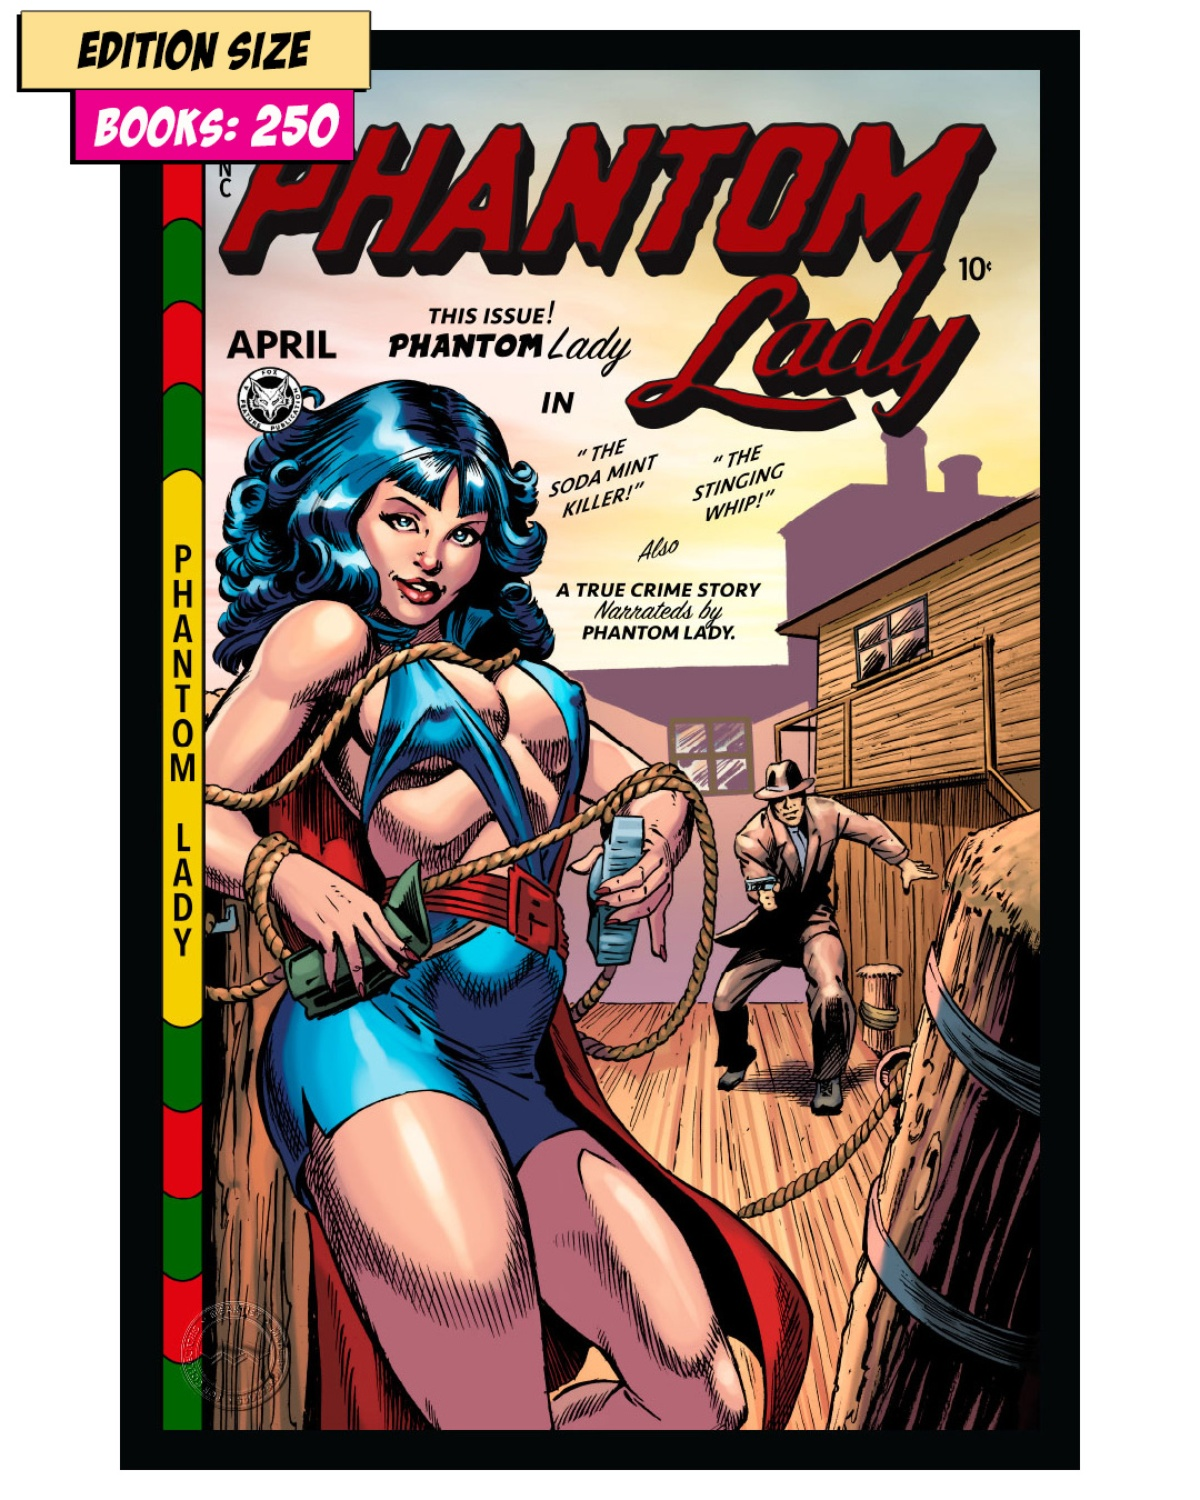 Book - PHANTOM LADY #17 PARTIAL: REPRINT